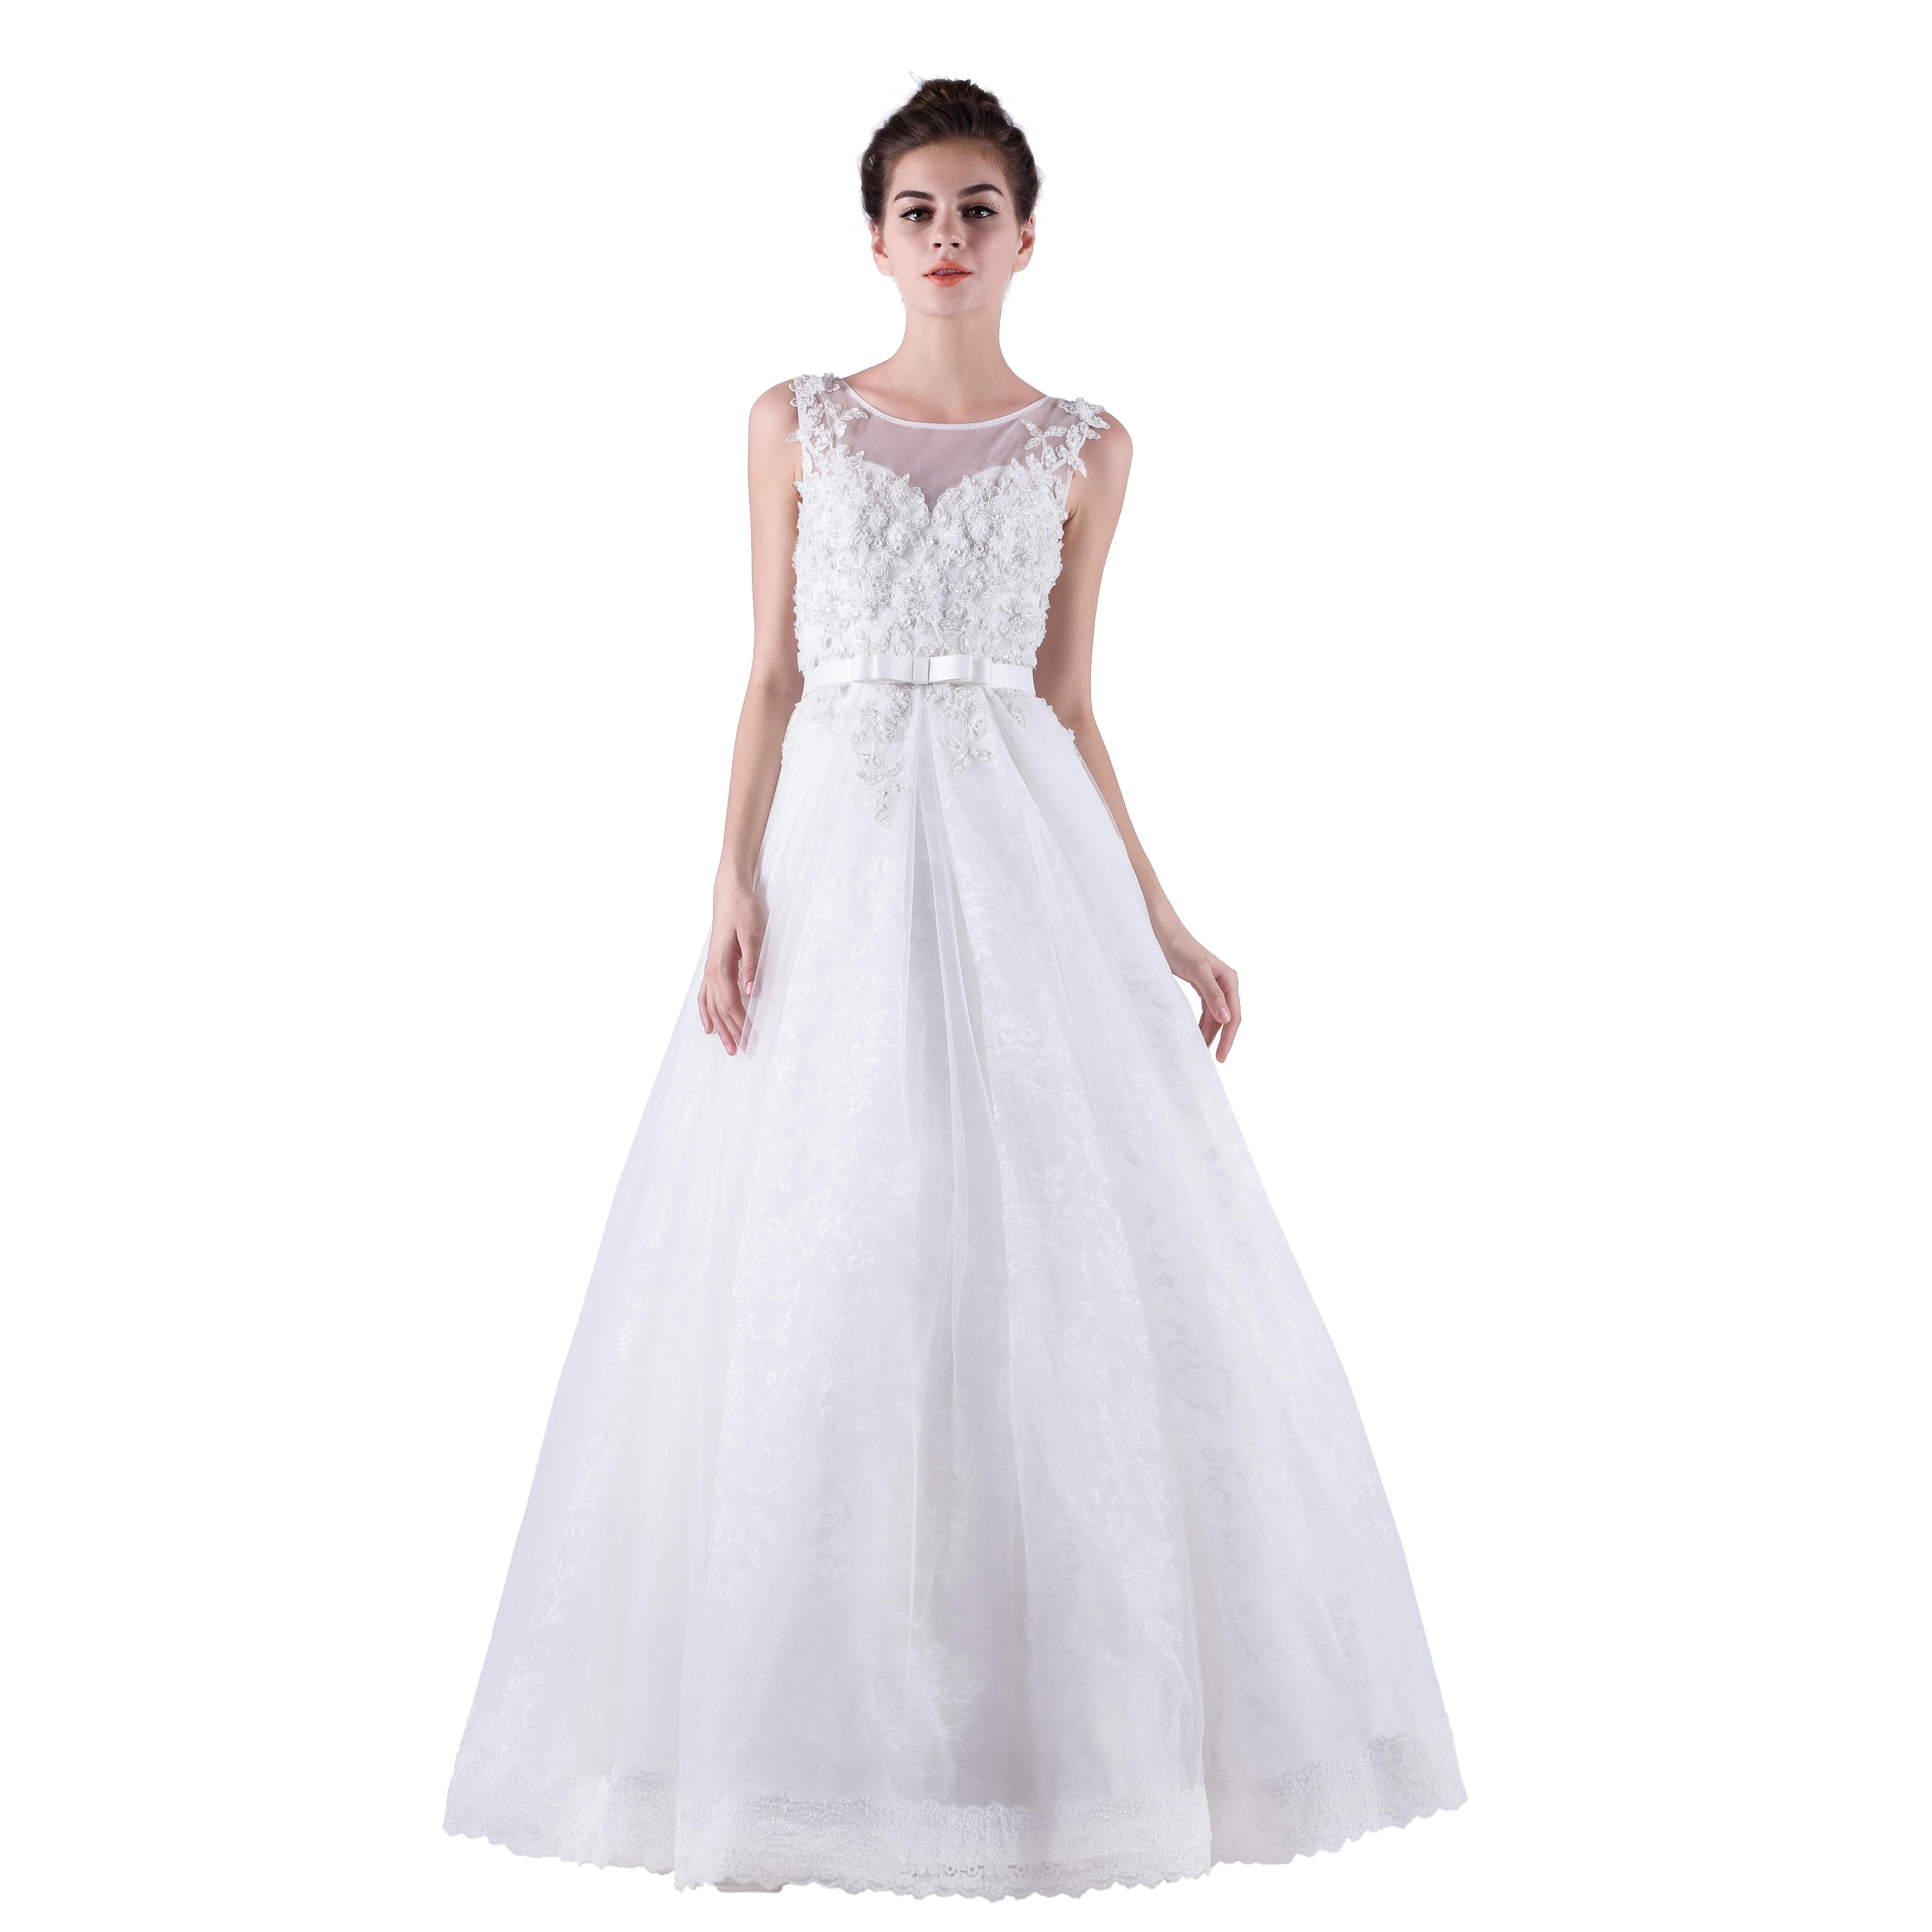 Long white women wedding dresses 2015 lace with o neck for Cheap wedding dresses made in china